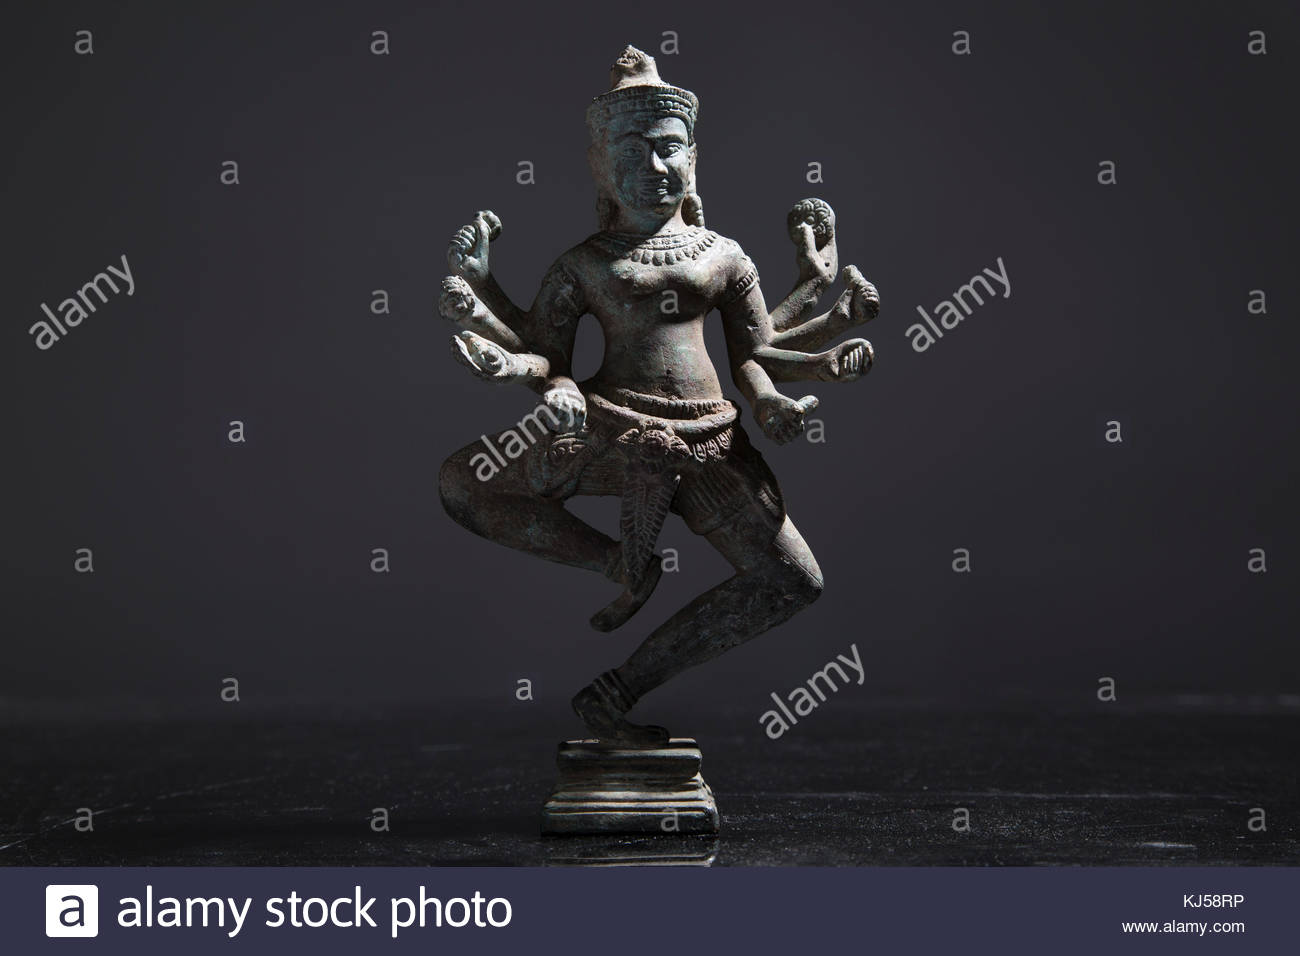 Religious Statue with 8 arms - Stock Image